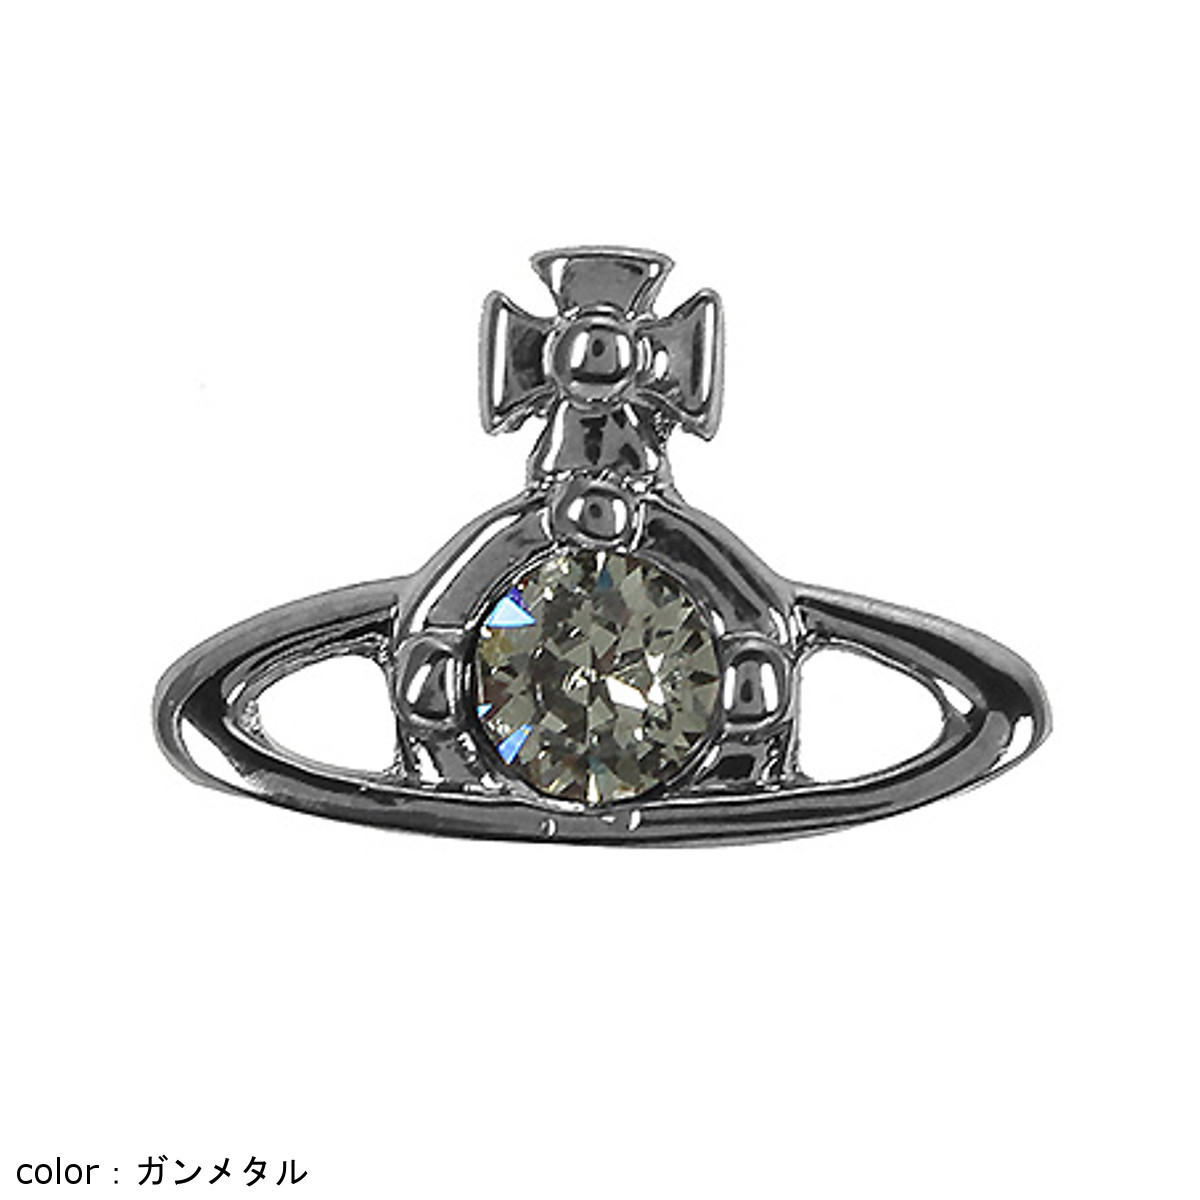 【Vivienne Westwood】NANO SOLITAIRE シングル スタッズ ピアス